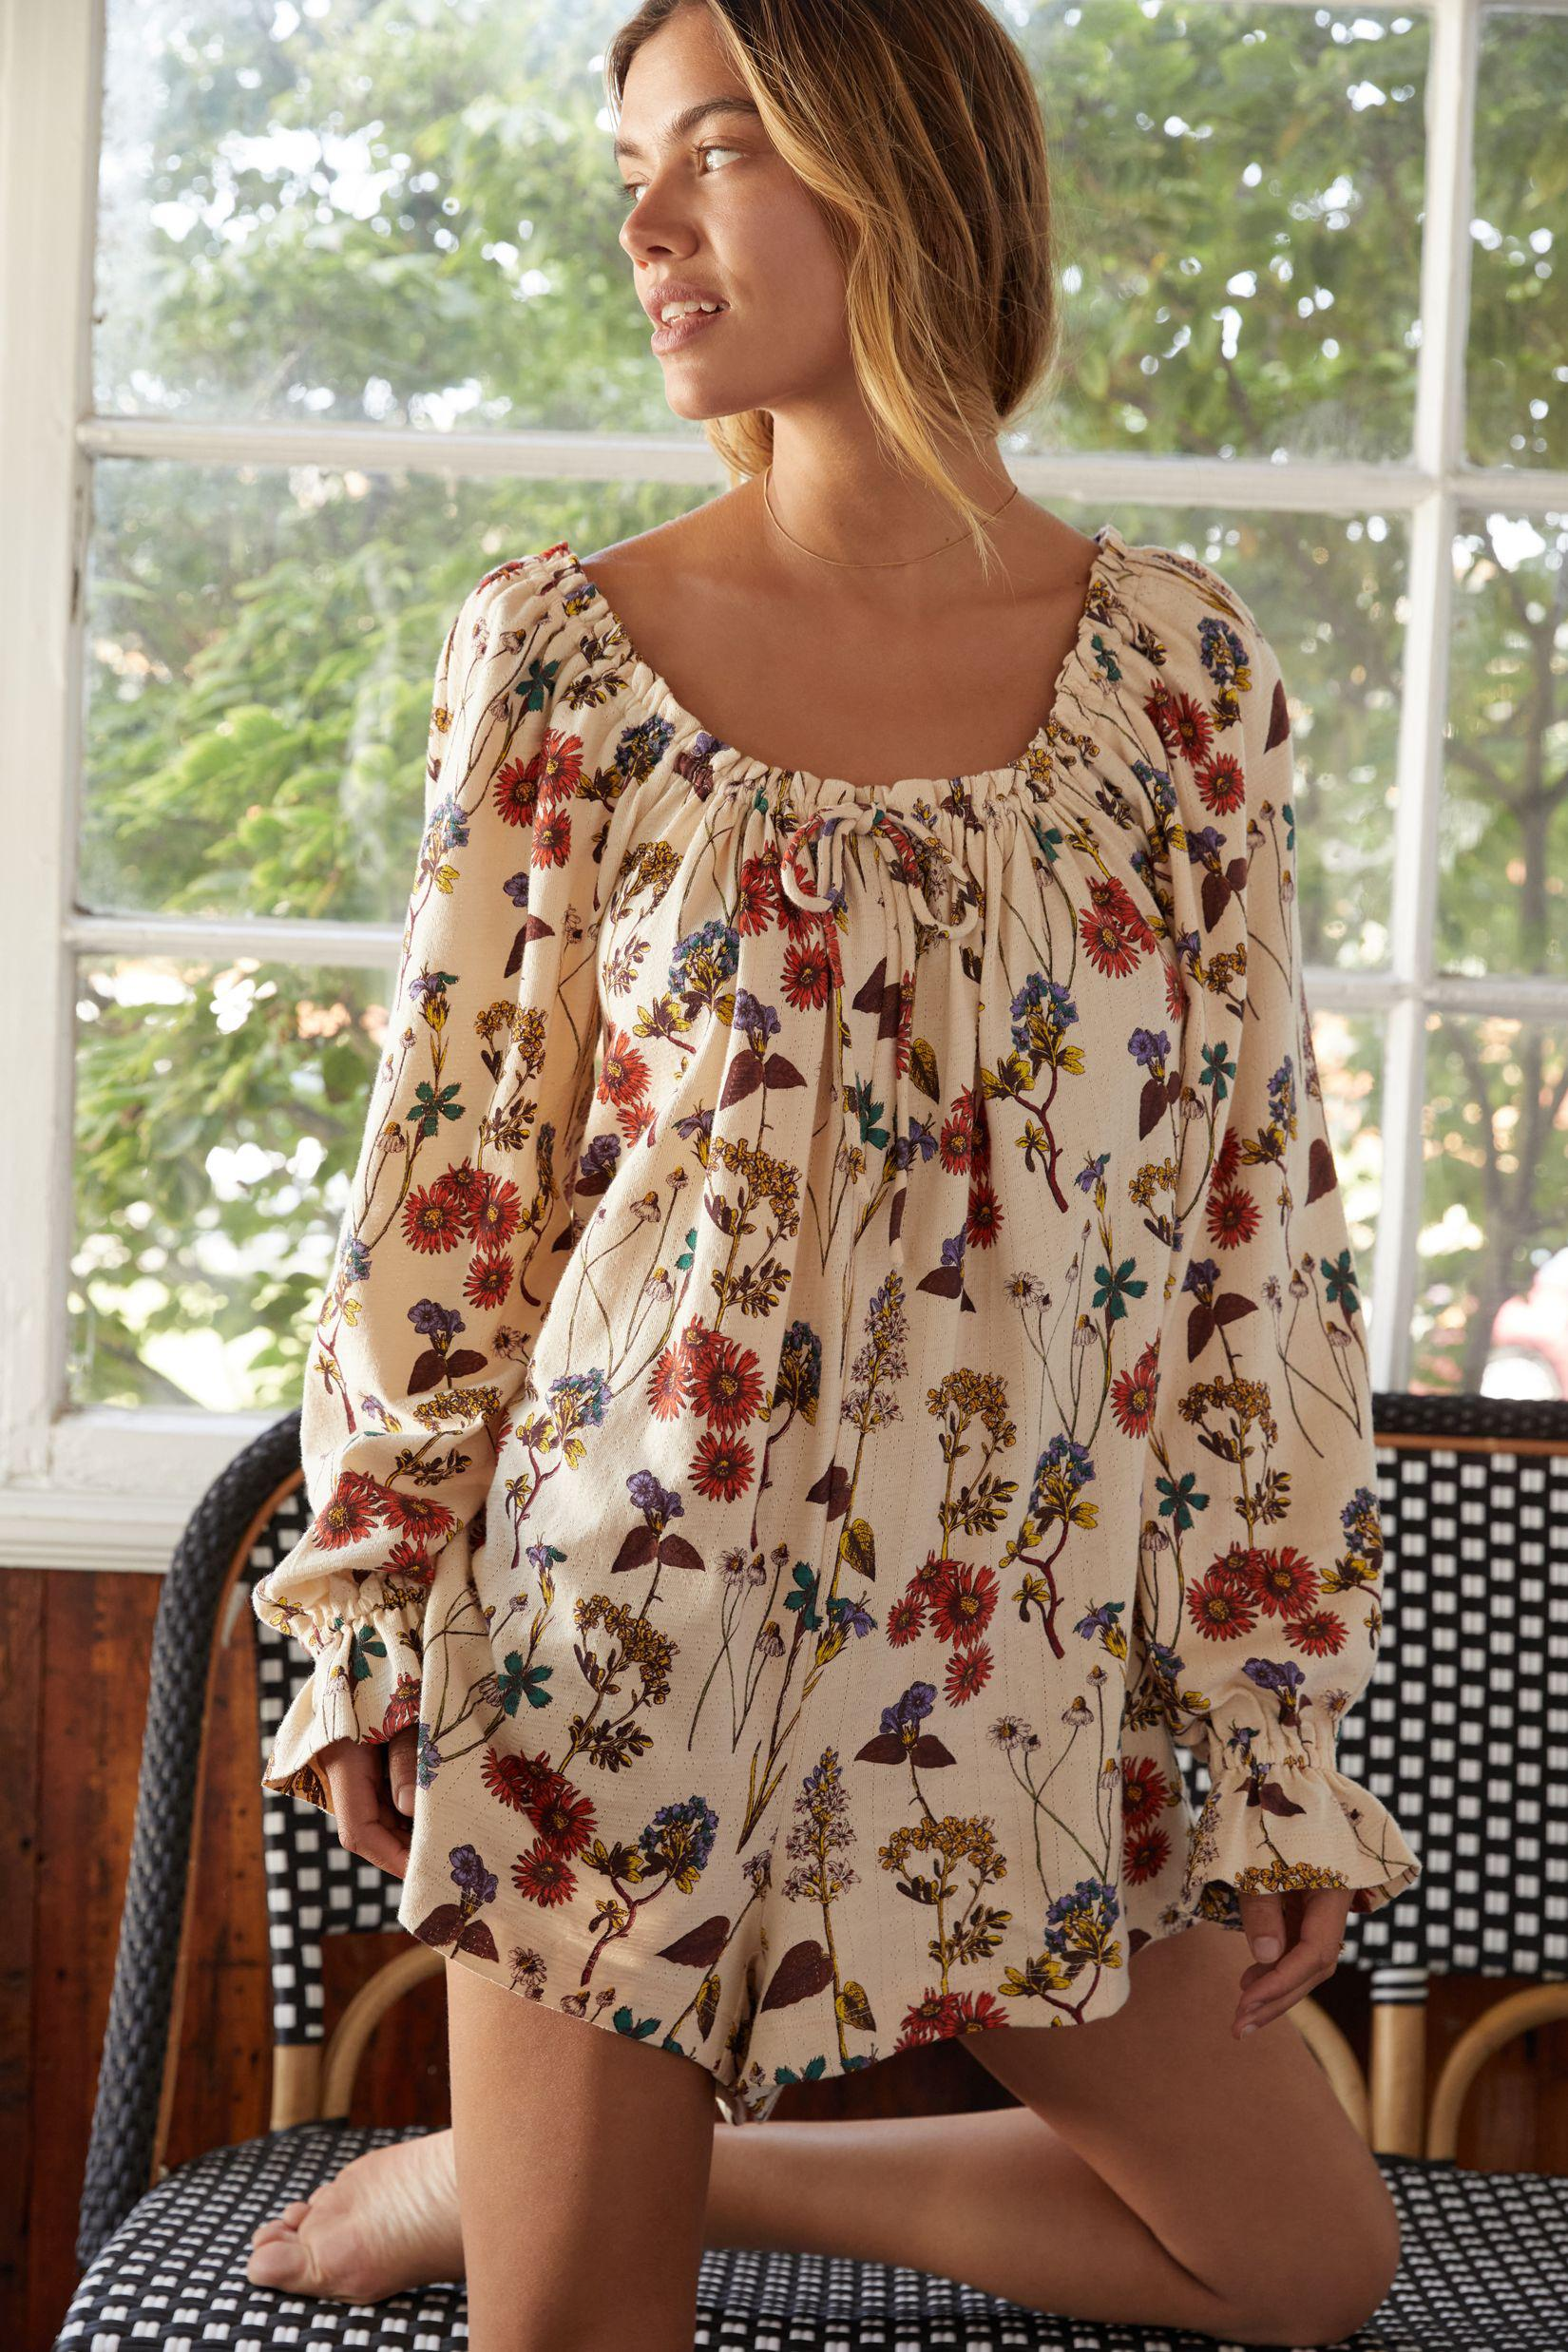 Puff-Sleeved Floral Romper 2